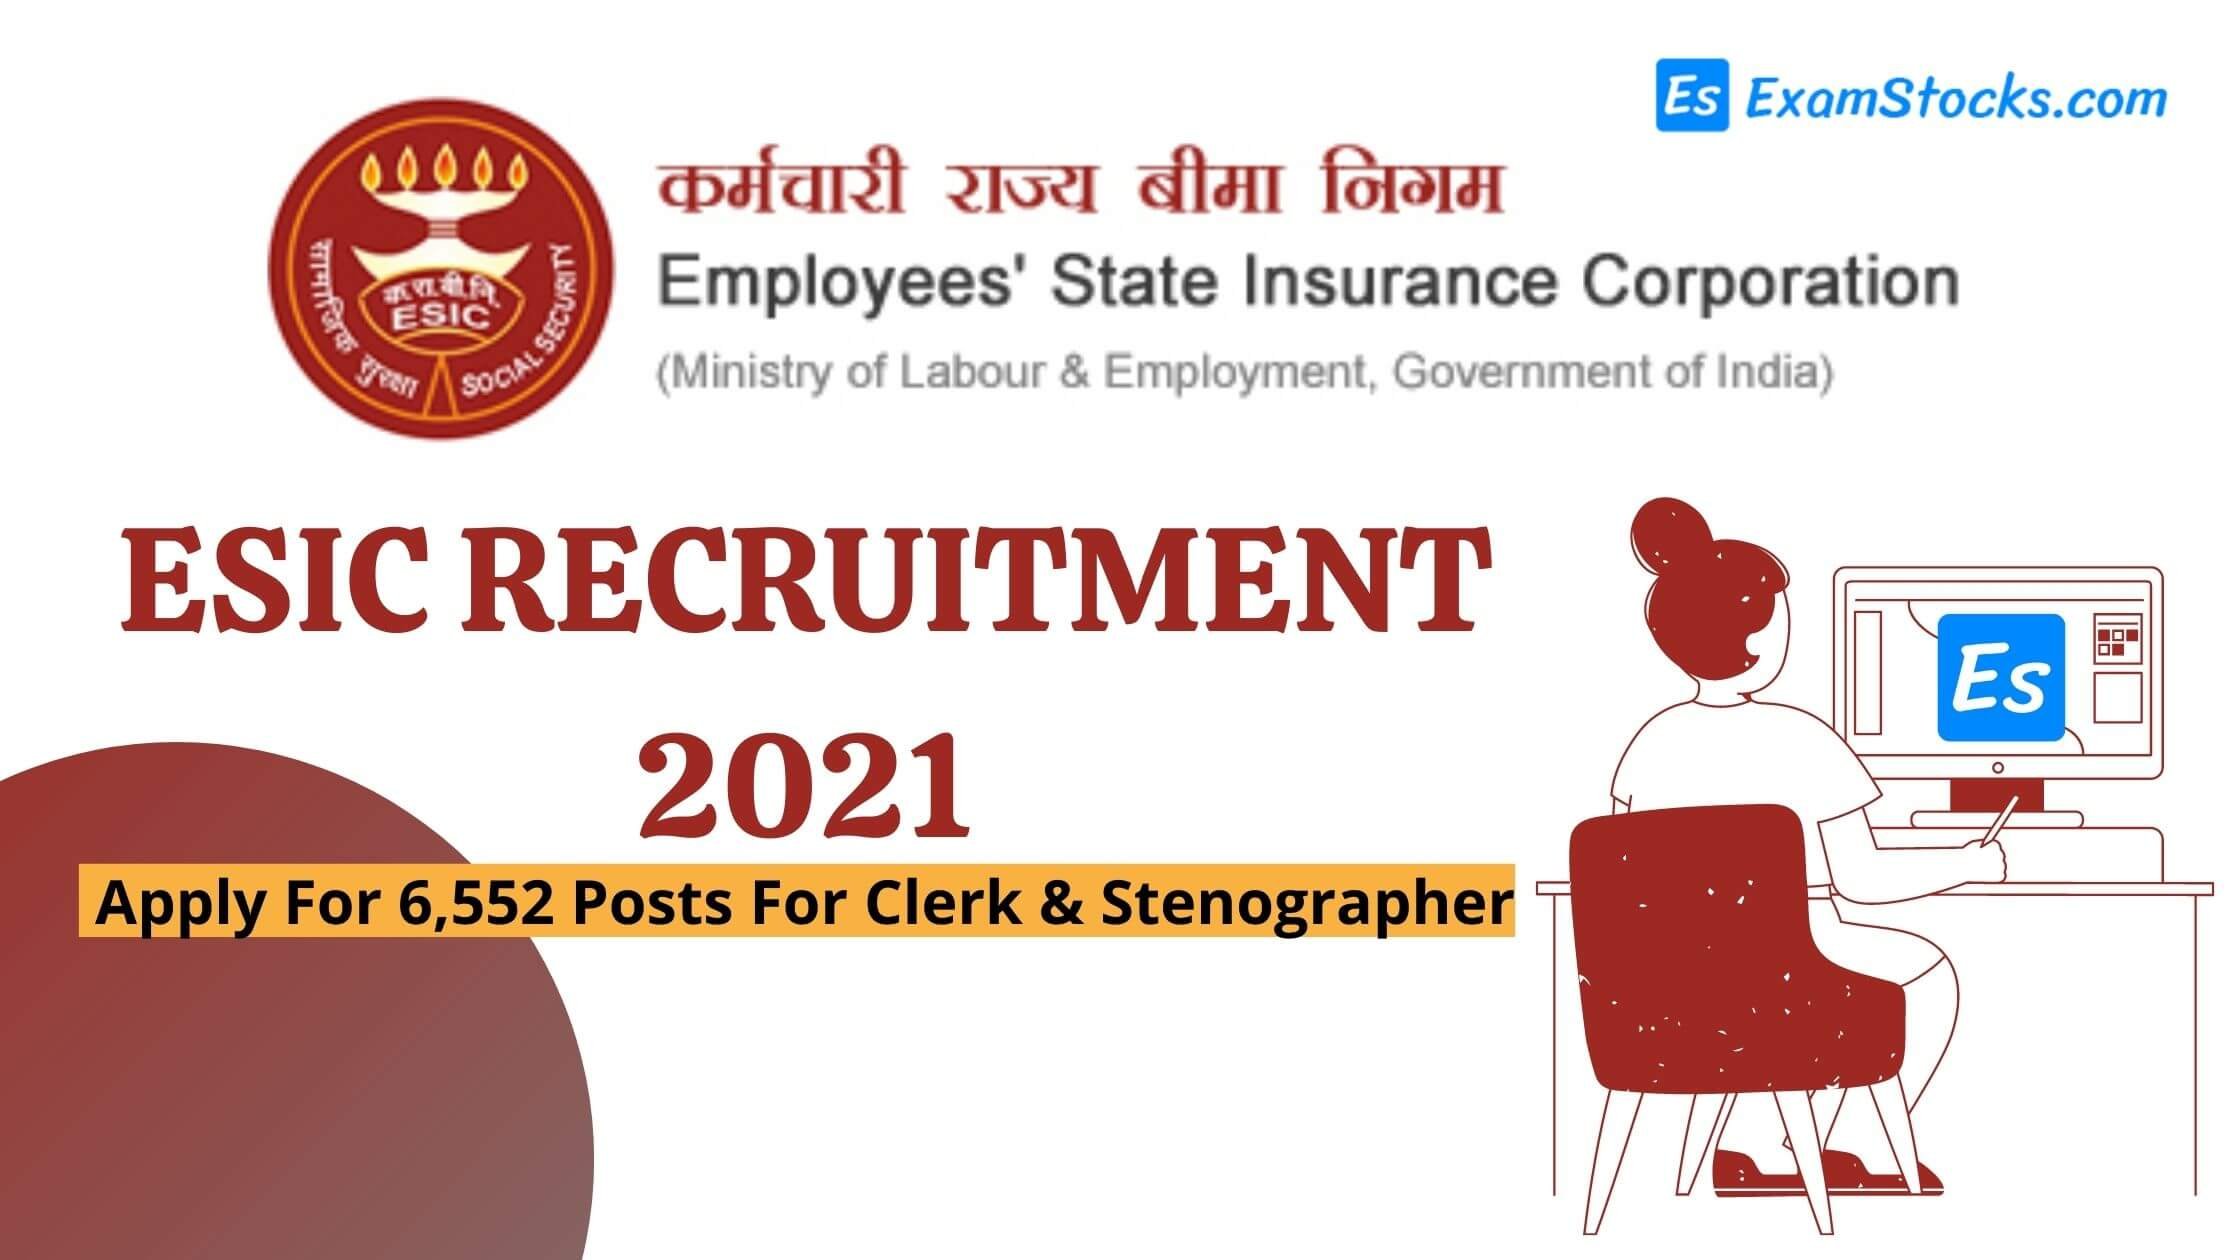 ESIC Recruitment 2021 Apply For 6552 Posts Of Clerk & Stenographer